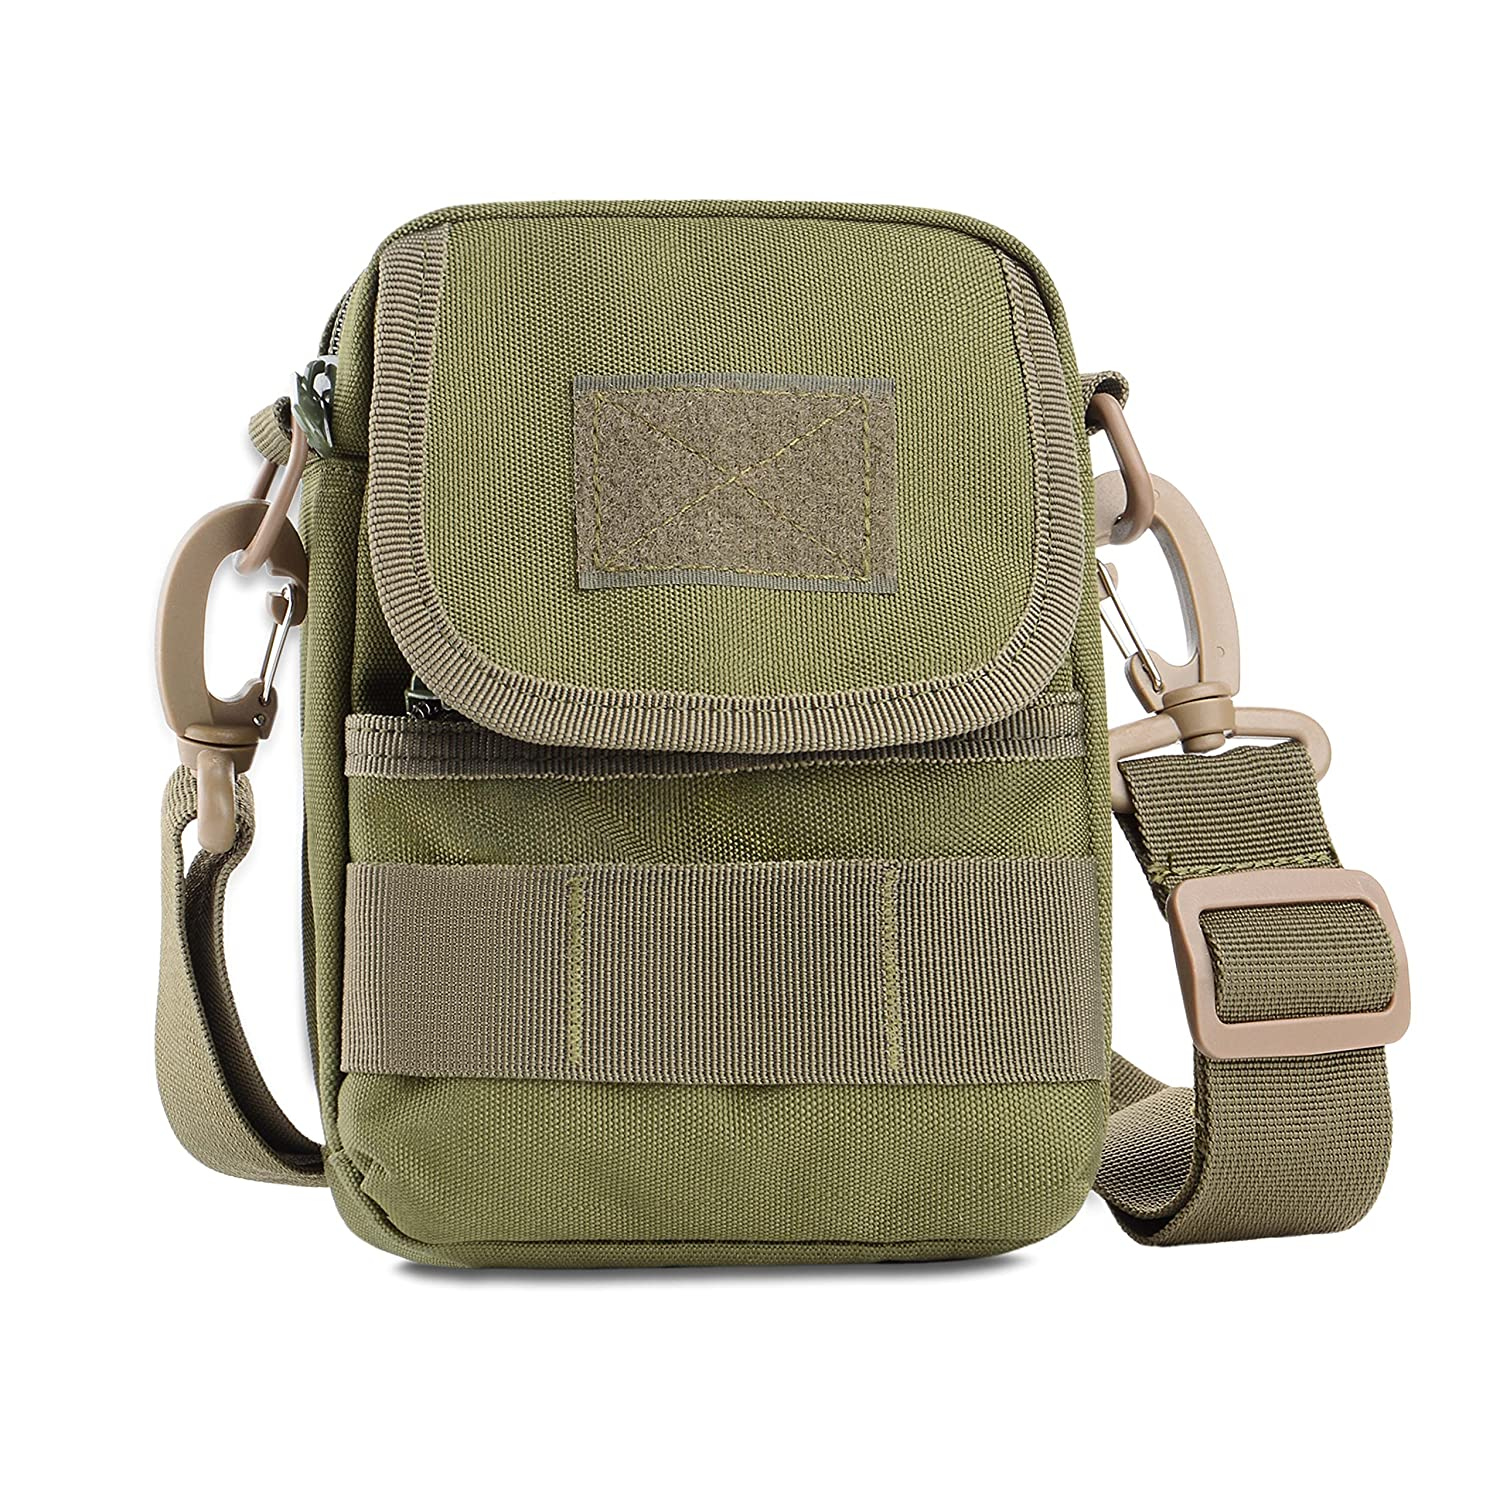 Army Multi-Function Nylon Tactical Messenger bag Military Equipment Shoulder bag